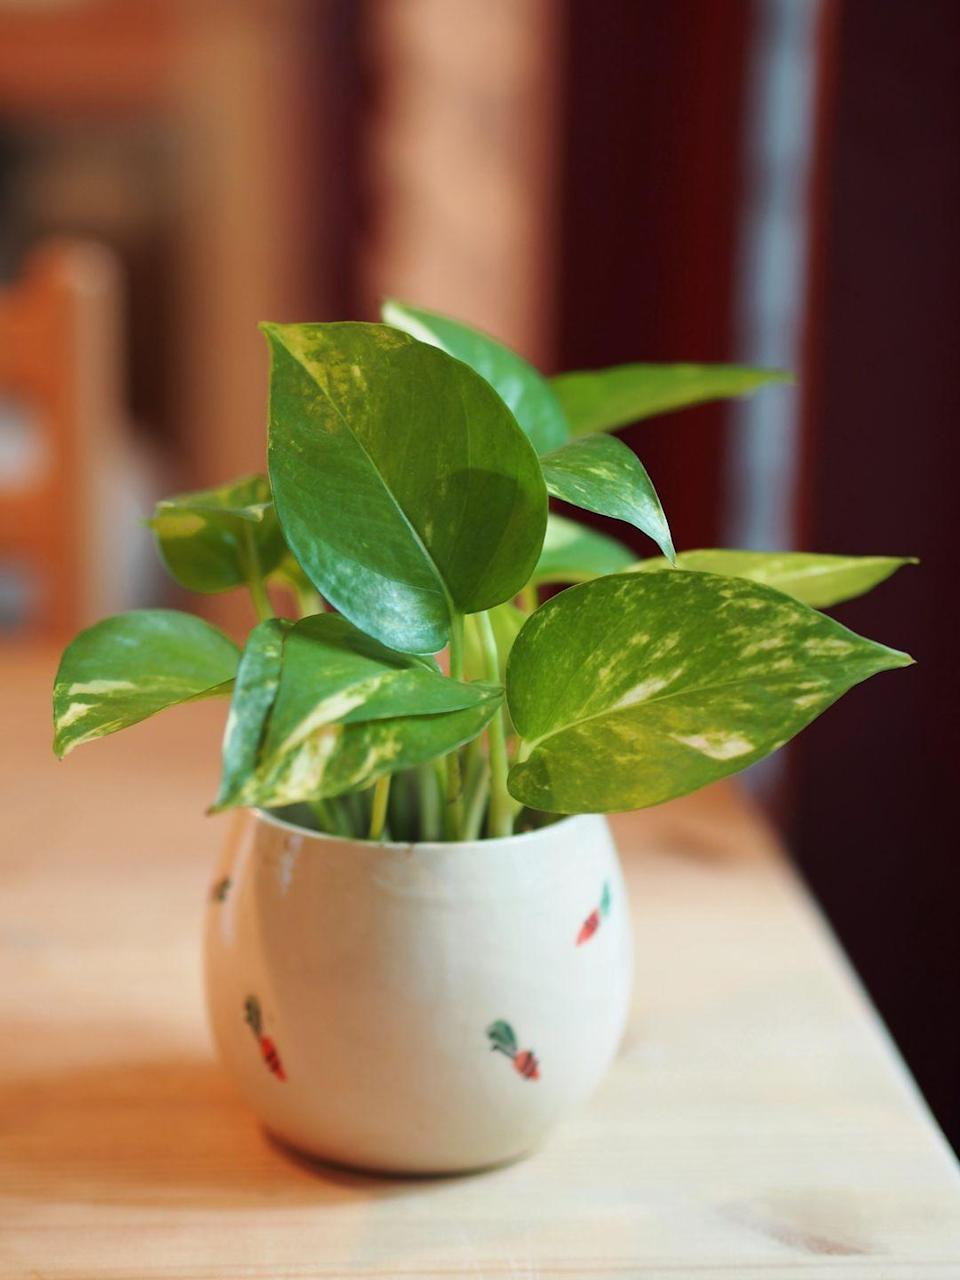 """<p><a class=""""link rapid-noclick-resp"""" href=""""https://www.amazon.com/Costa-Farms-Devils-Golden-Pothos/dp/B07TTJNM89/?tag=syn-yahoo-20&ascsubtag=%5Bartid%7C10057.g.3716%5Bsrc%7Cyahoo-us"""" rel=""""nofollow noopener"""" target=""""_blank"""" data-ylk=""""slk:BUY NOW"""">BUY NOW</a> <strong><em>$20, amazon.com</em></strong></p><p>Also known as Devil's Ivy, this sprawling plant is incredibly easy to take care of. It can tolerate the darkest cubicles and the brightest, window-filled offices with ease, and will still survive when you forgot to water it every once in a while. Look for cues on what kind of care it needs—yellow leaves mean it's been overwatered, while a droopy plant is thirsty. </p>"""